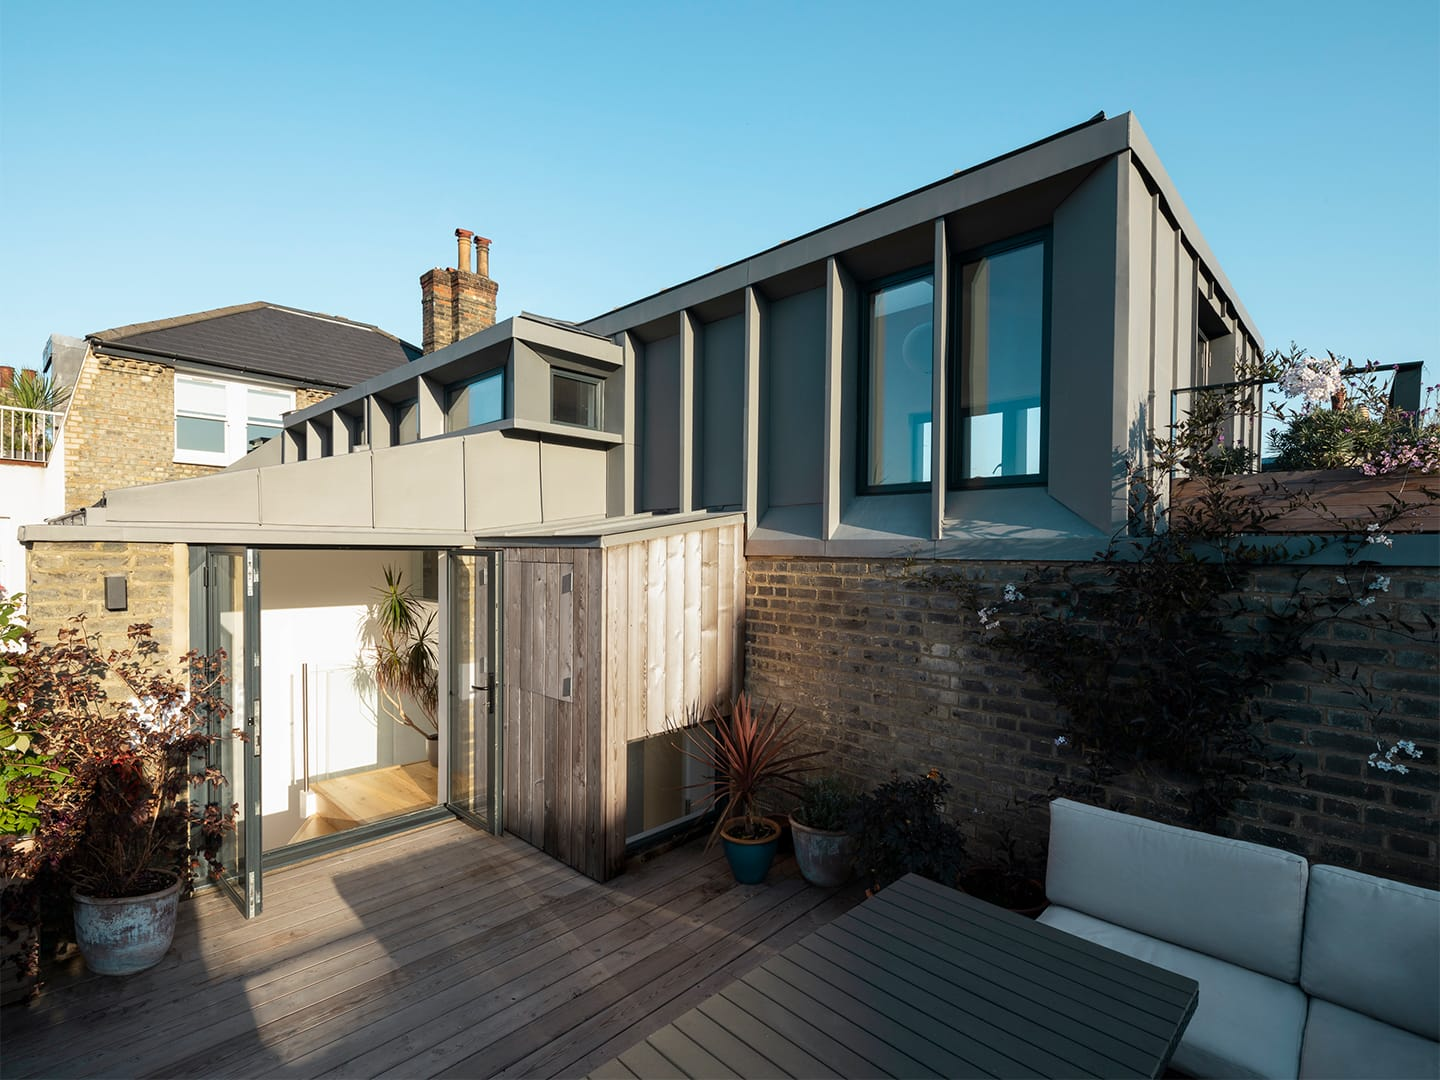 32 Laurier Road, Richard Keep Architects